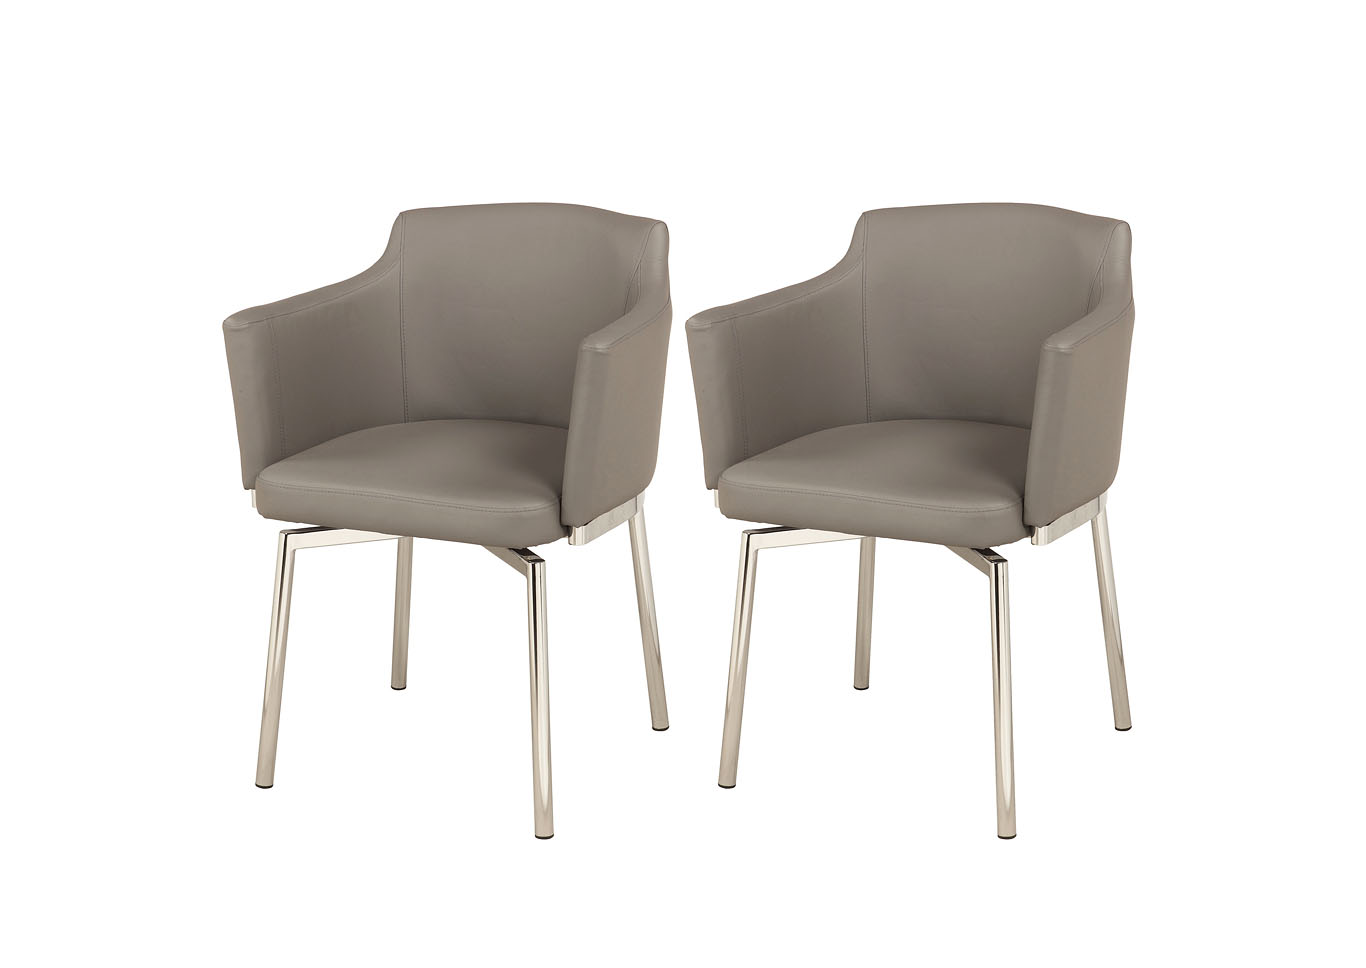 Dusty Grey Club Style Arm Dining Chair (Set of 2) with Memory Swivel,Chintaly Imports